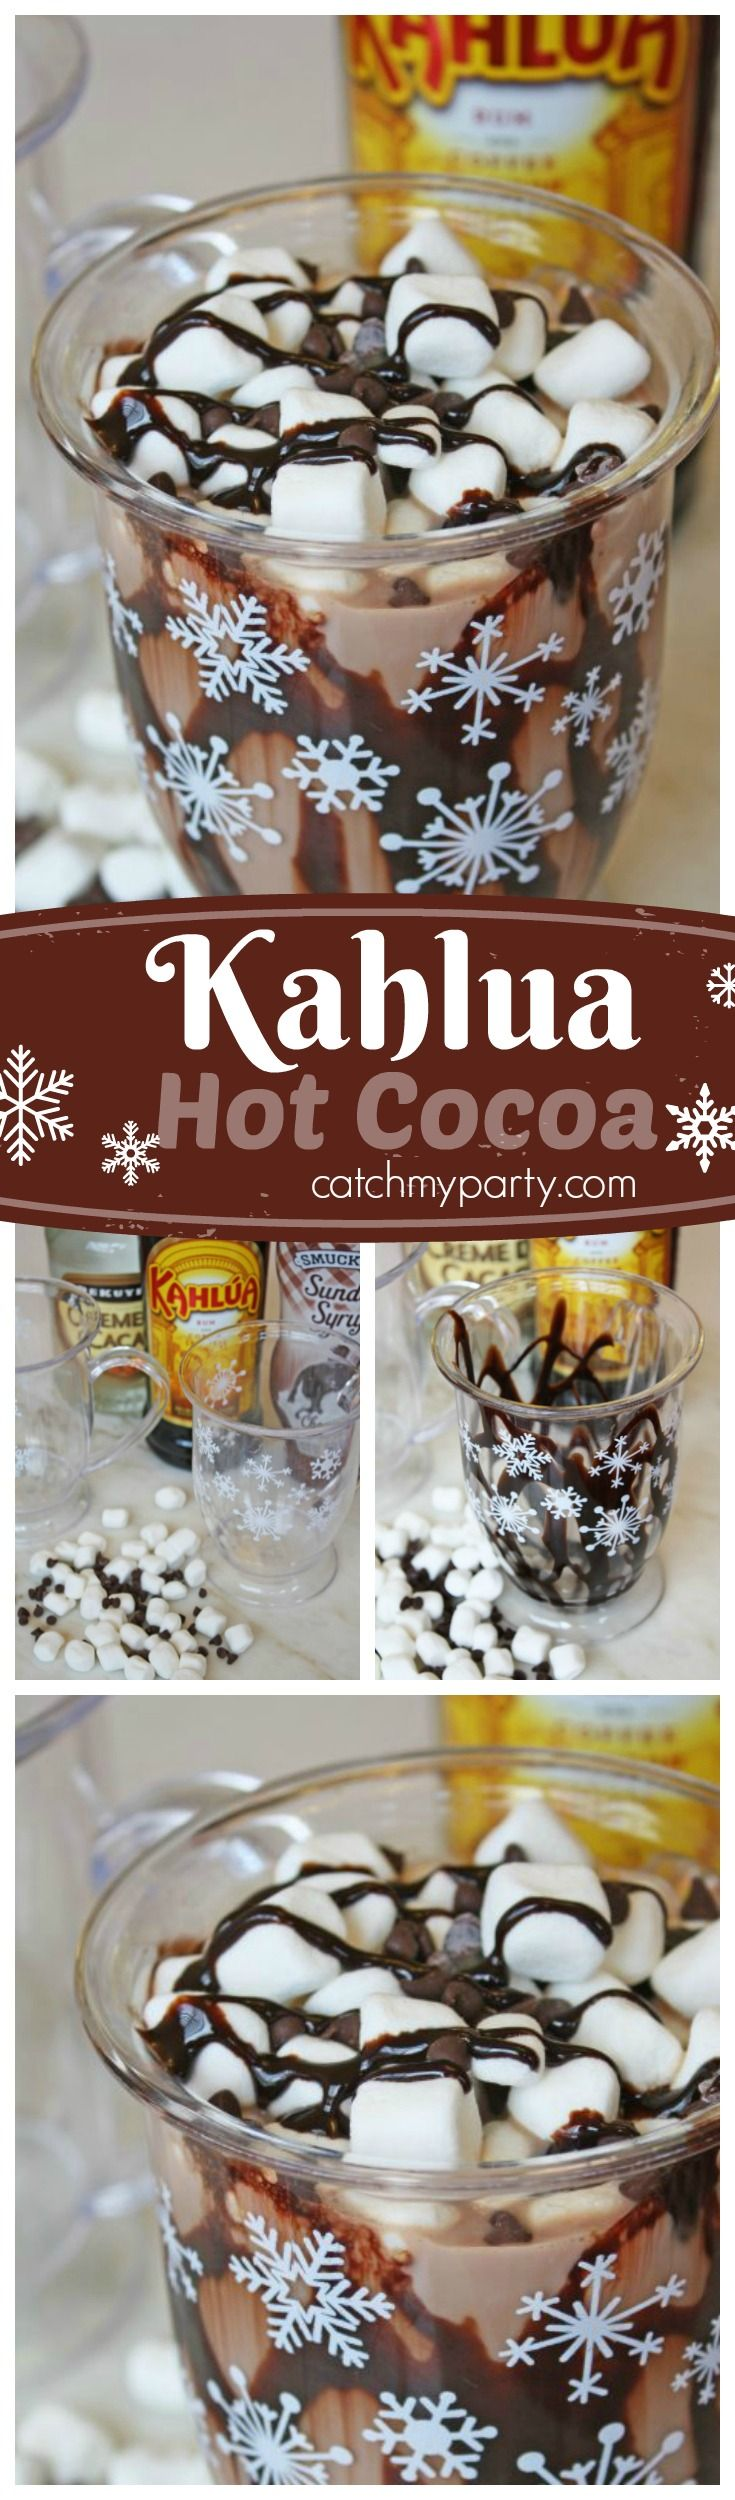 """Looking for a way to make your hot cocoa a little more """"grown up"""" this winter? How about trying our Kahlua hot cocoa recipe with Kahlua, creme de cacao, plus all the good stuff like chocolate syrup, whipped cream, and marshmallows. See more holiday recipes at CatchMyParty.com"""